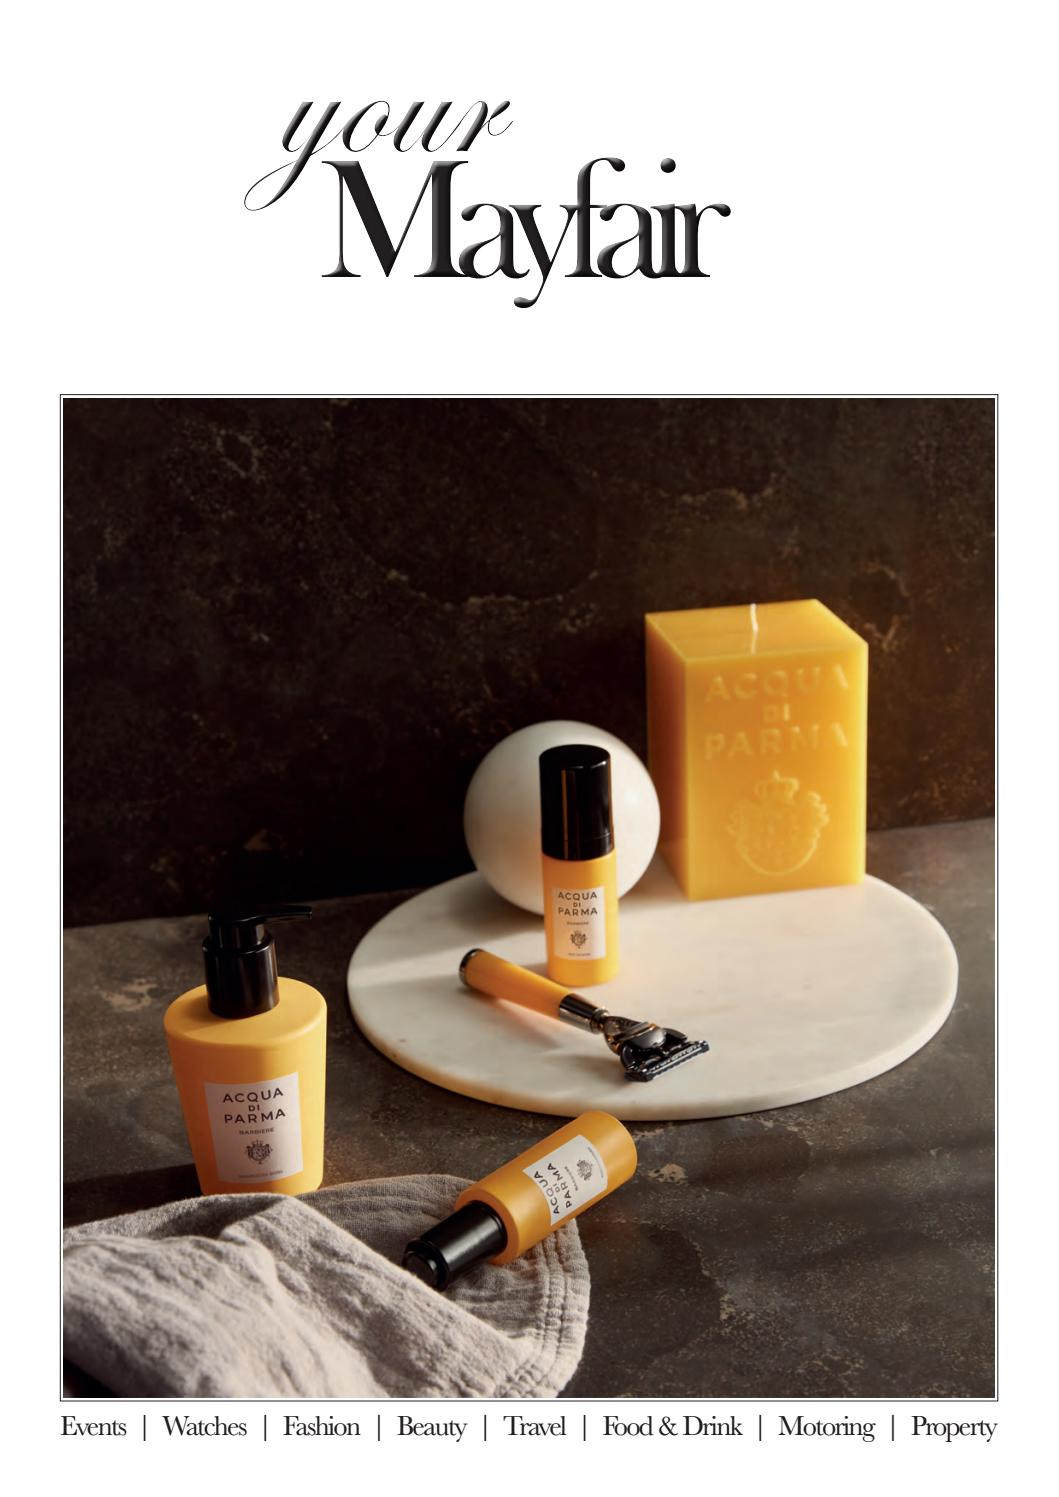 buy popular 0516a c36a1 Your Mayfair by Your Media London - issuu